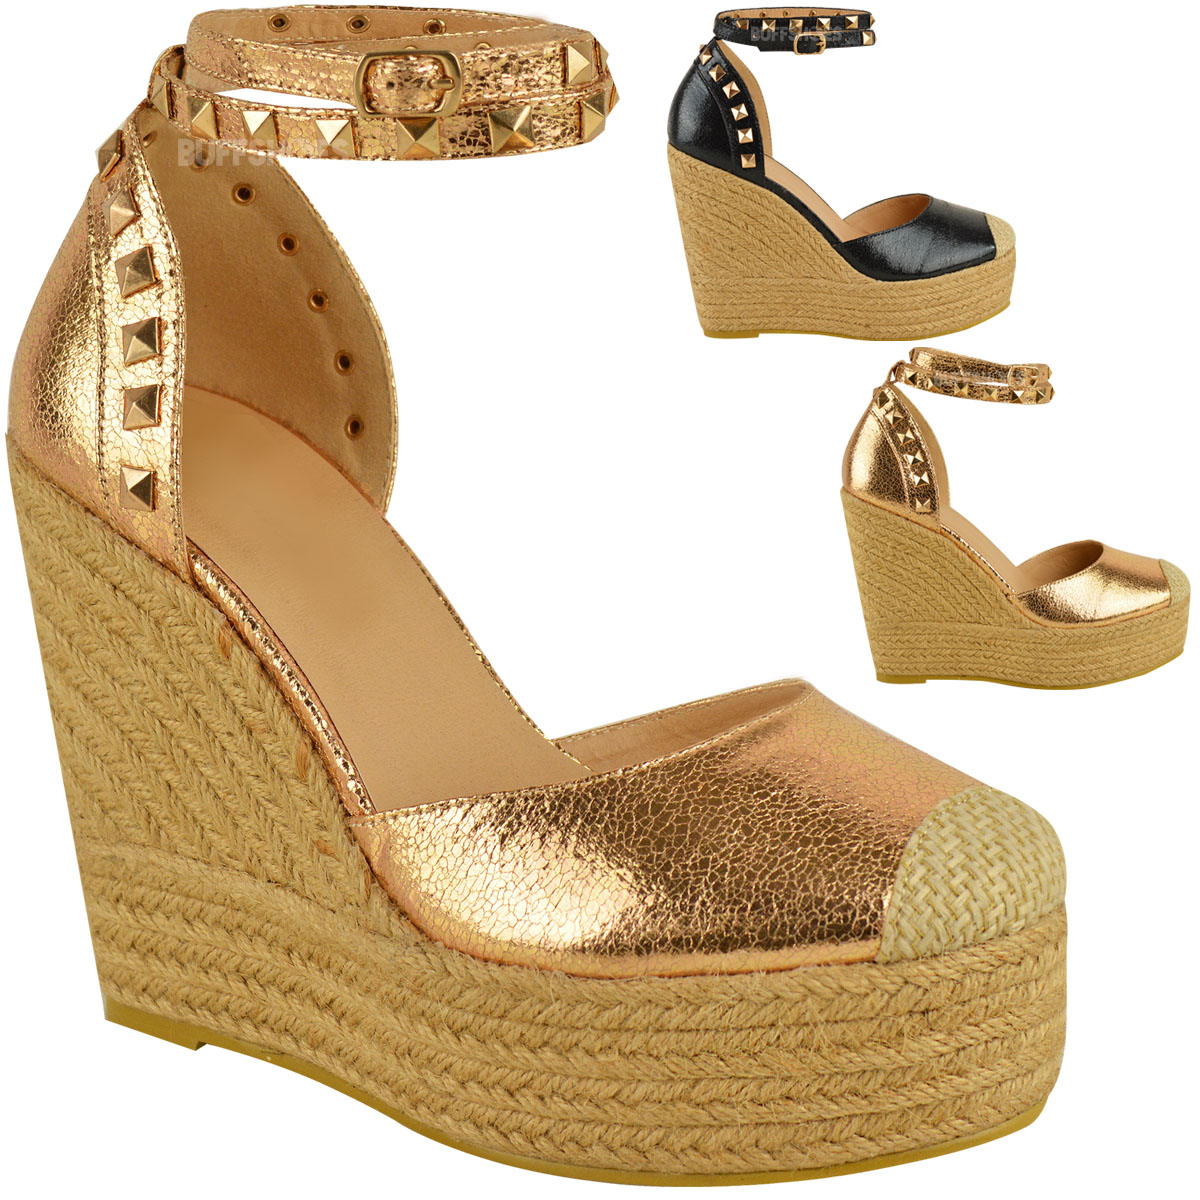 Discover the latest styles of women's espadrilles sandals from your favorite brands at Famous Footwear! Find your fit today!